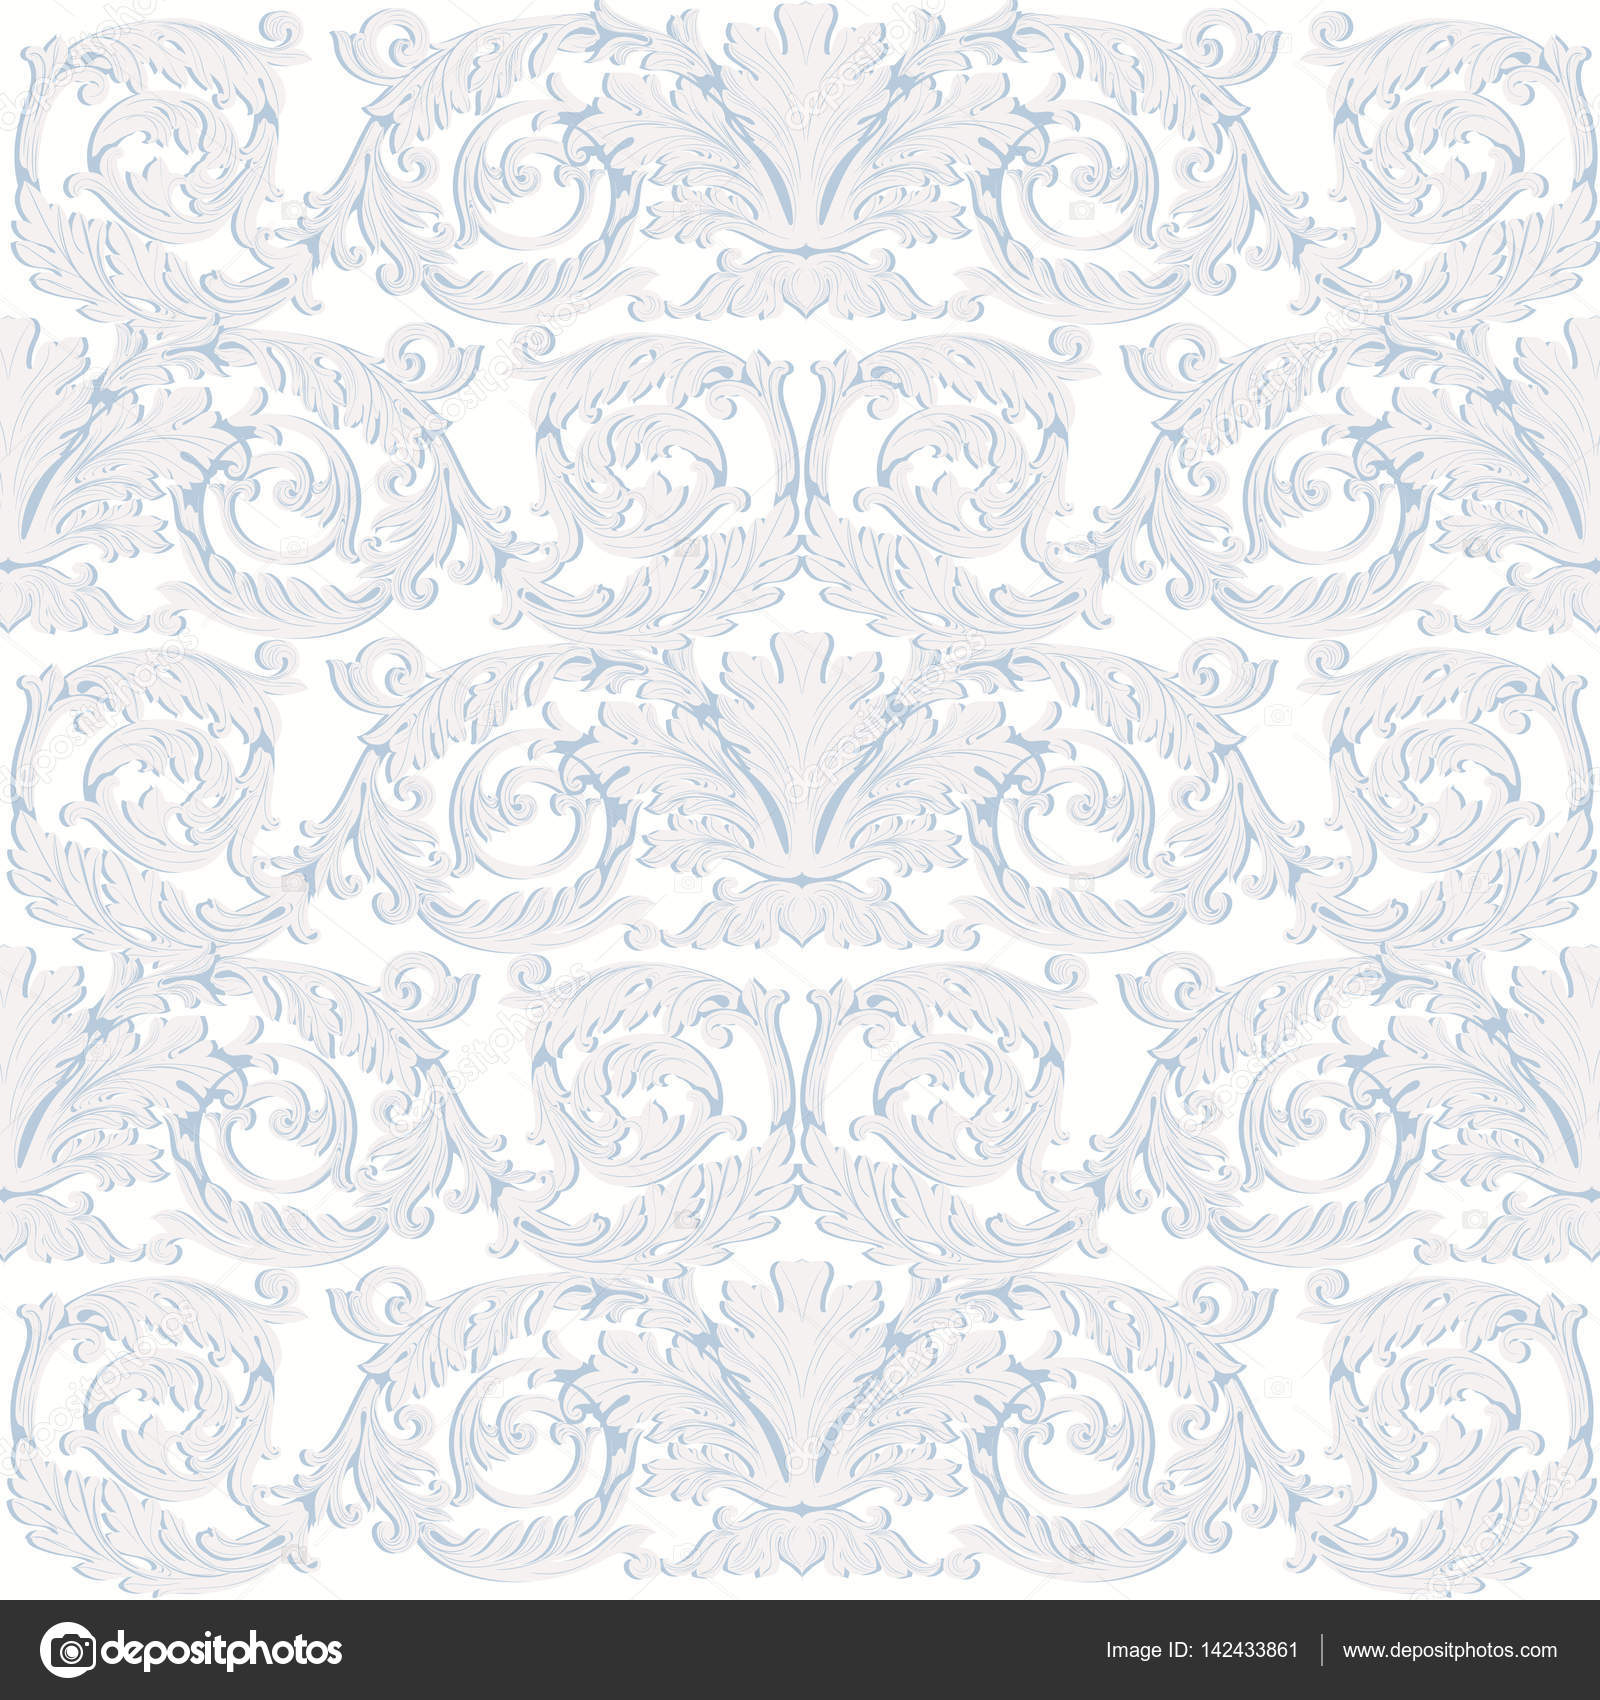 Vintage Baroque Damask Floral Pattern Acanthus Imperial Style Vector Decor Background Luxury Classic Ornament Royal Victorian Texture For Wallpapers